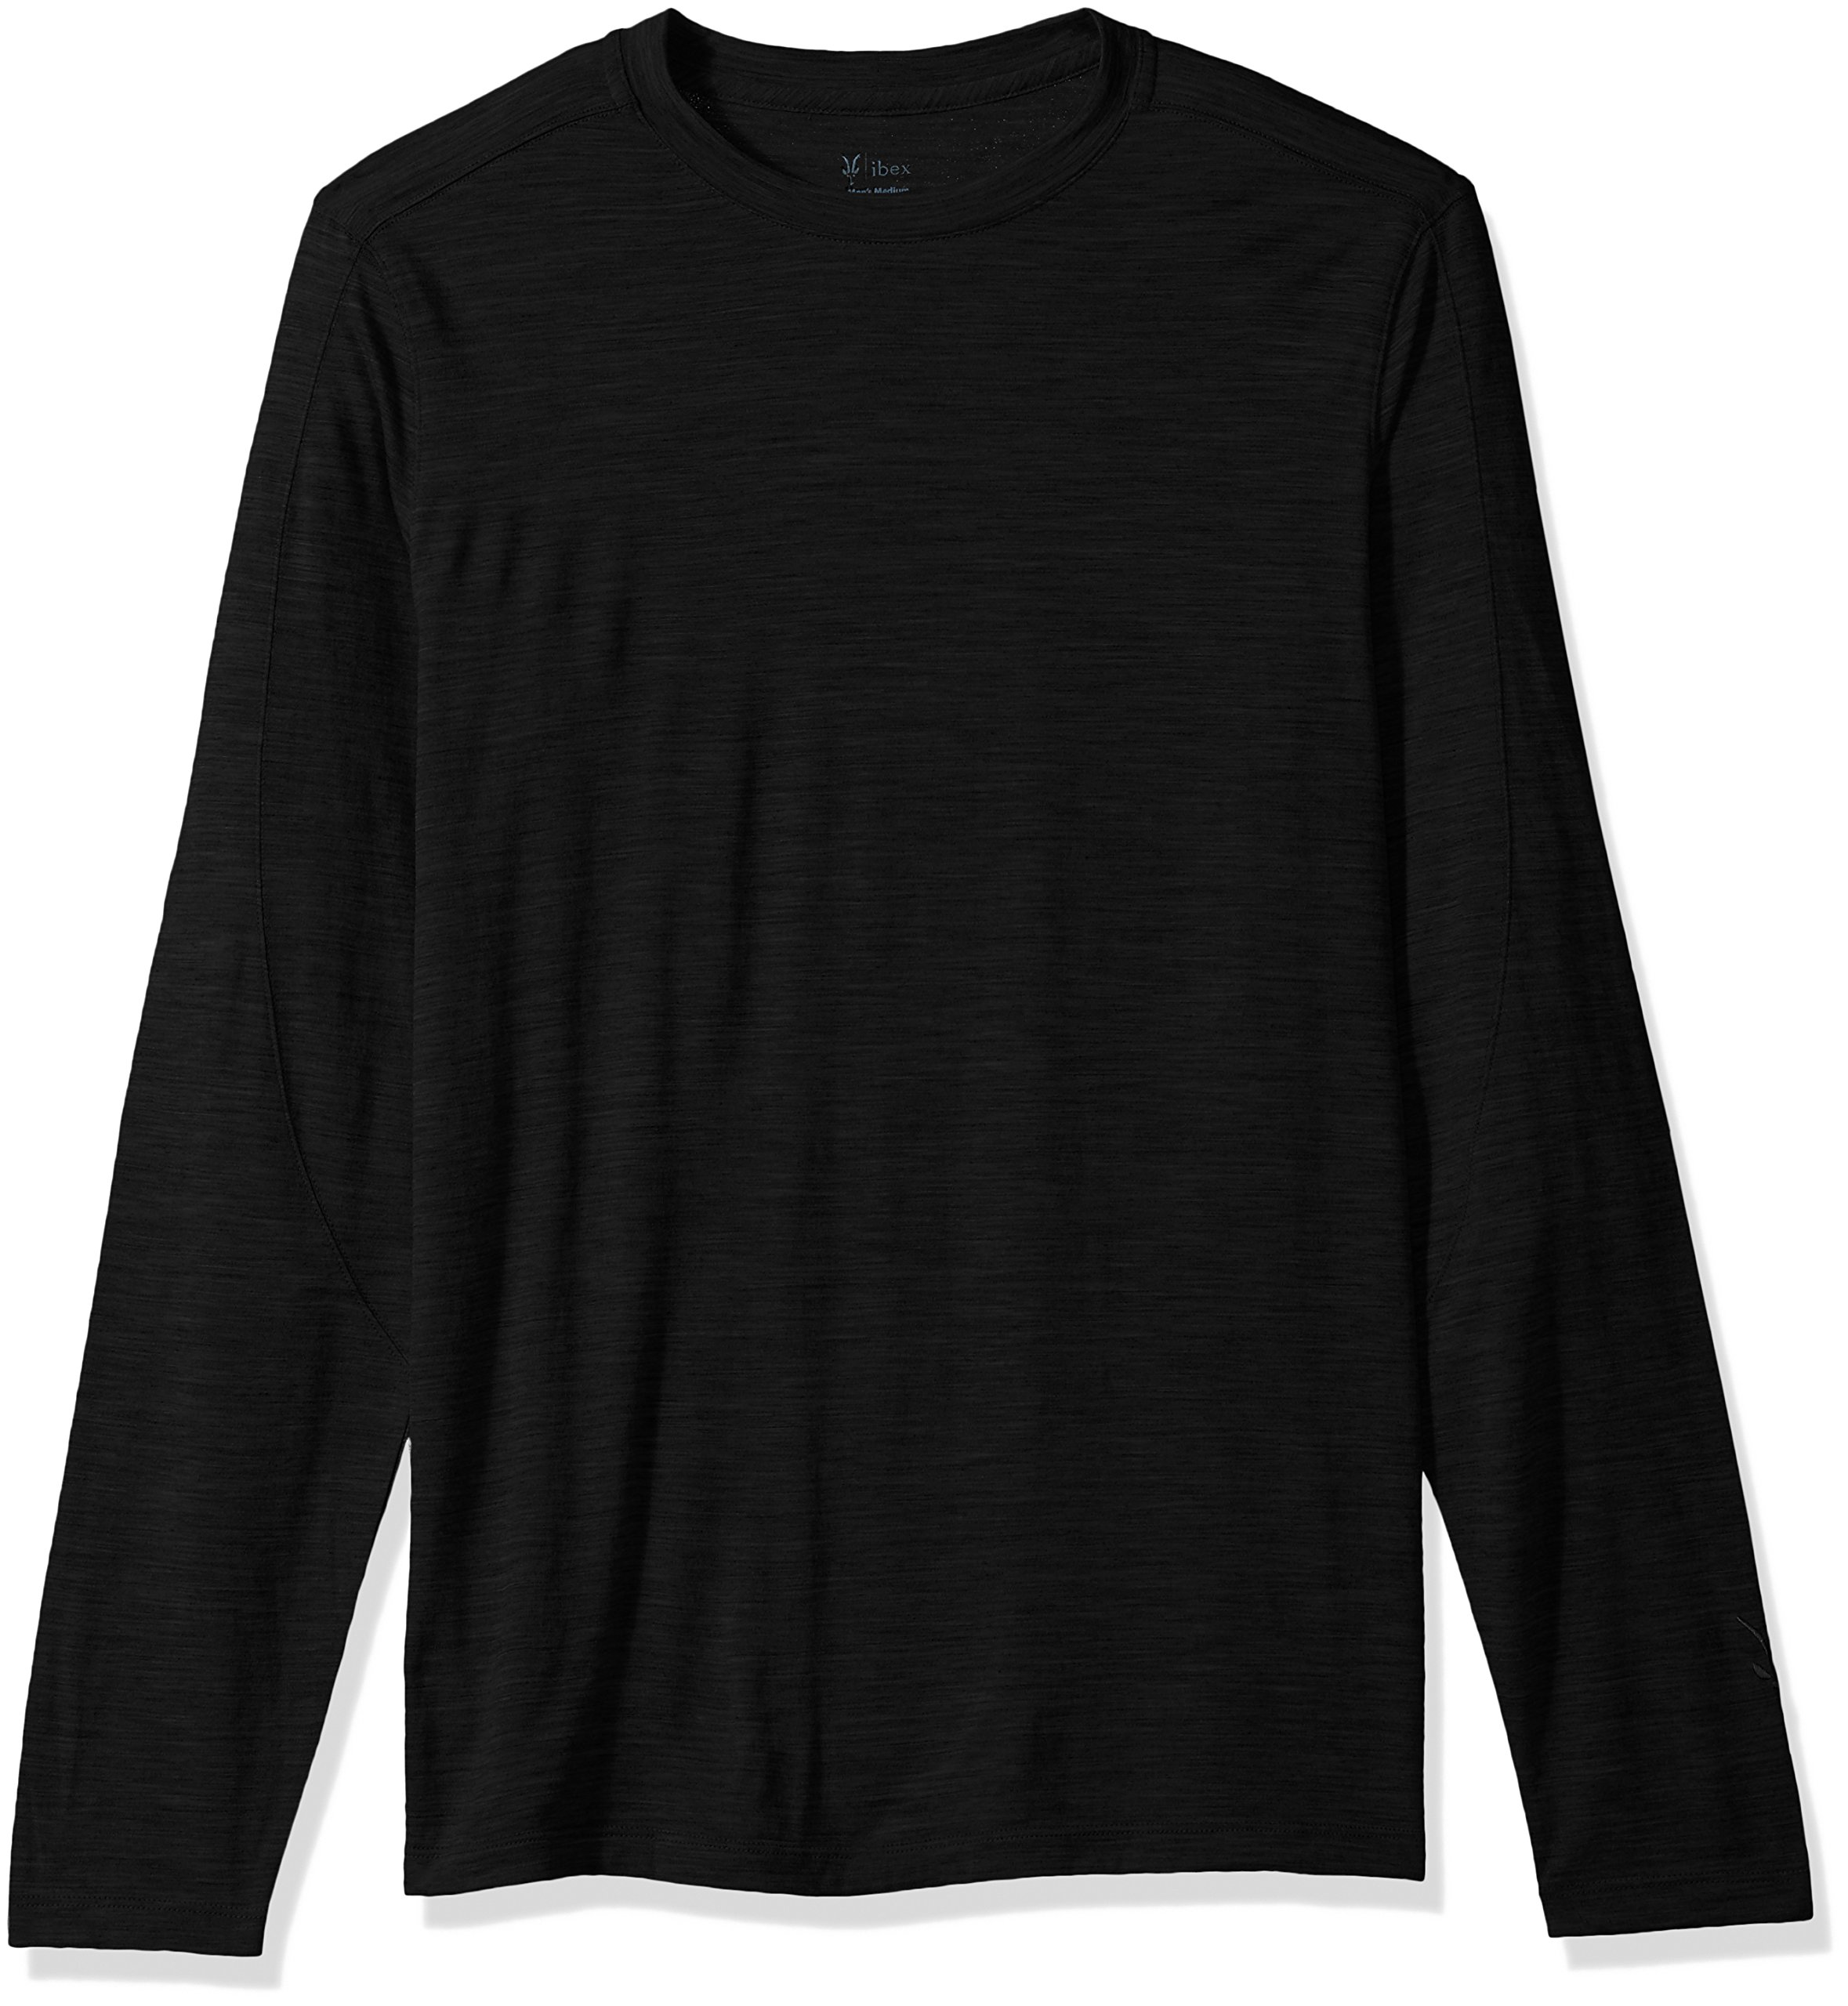 Ibex Outdoor Clothing Merino Wool Odyssey Crew T-Shirt, Black, Large by Ibex